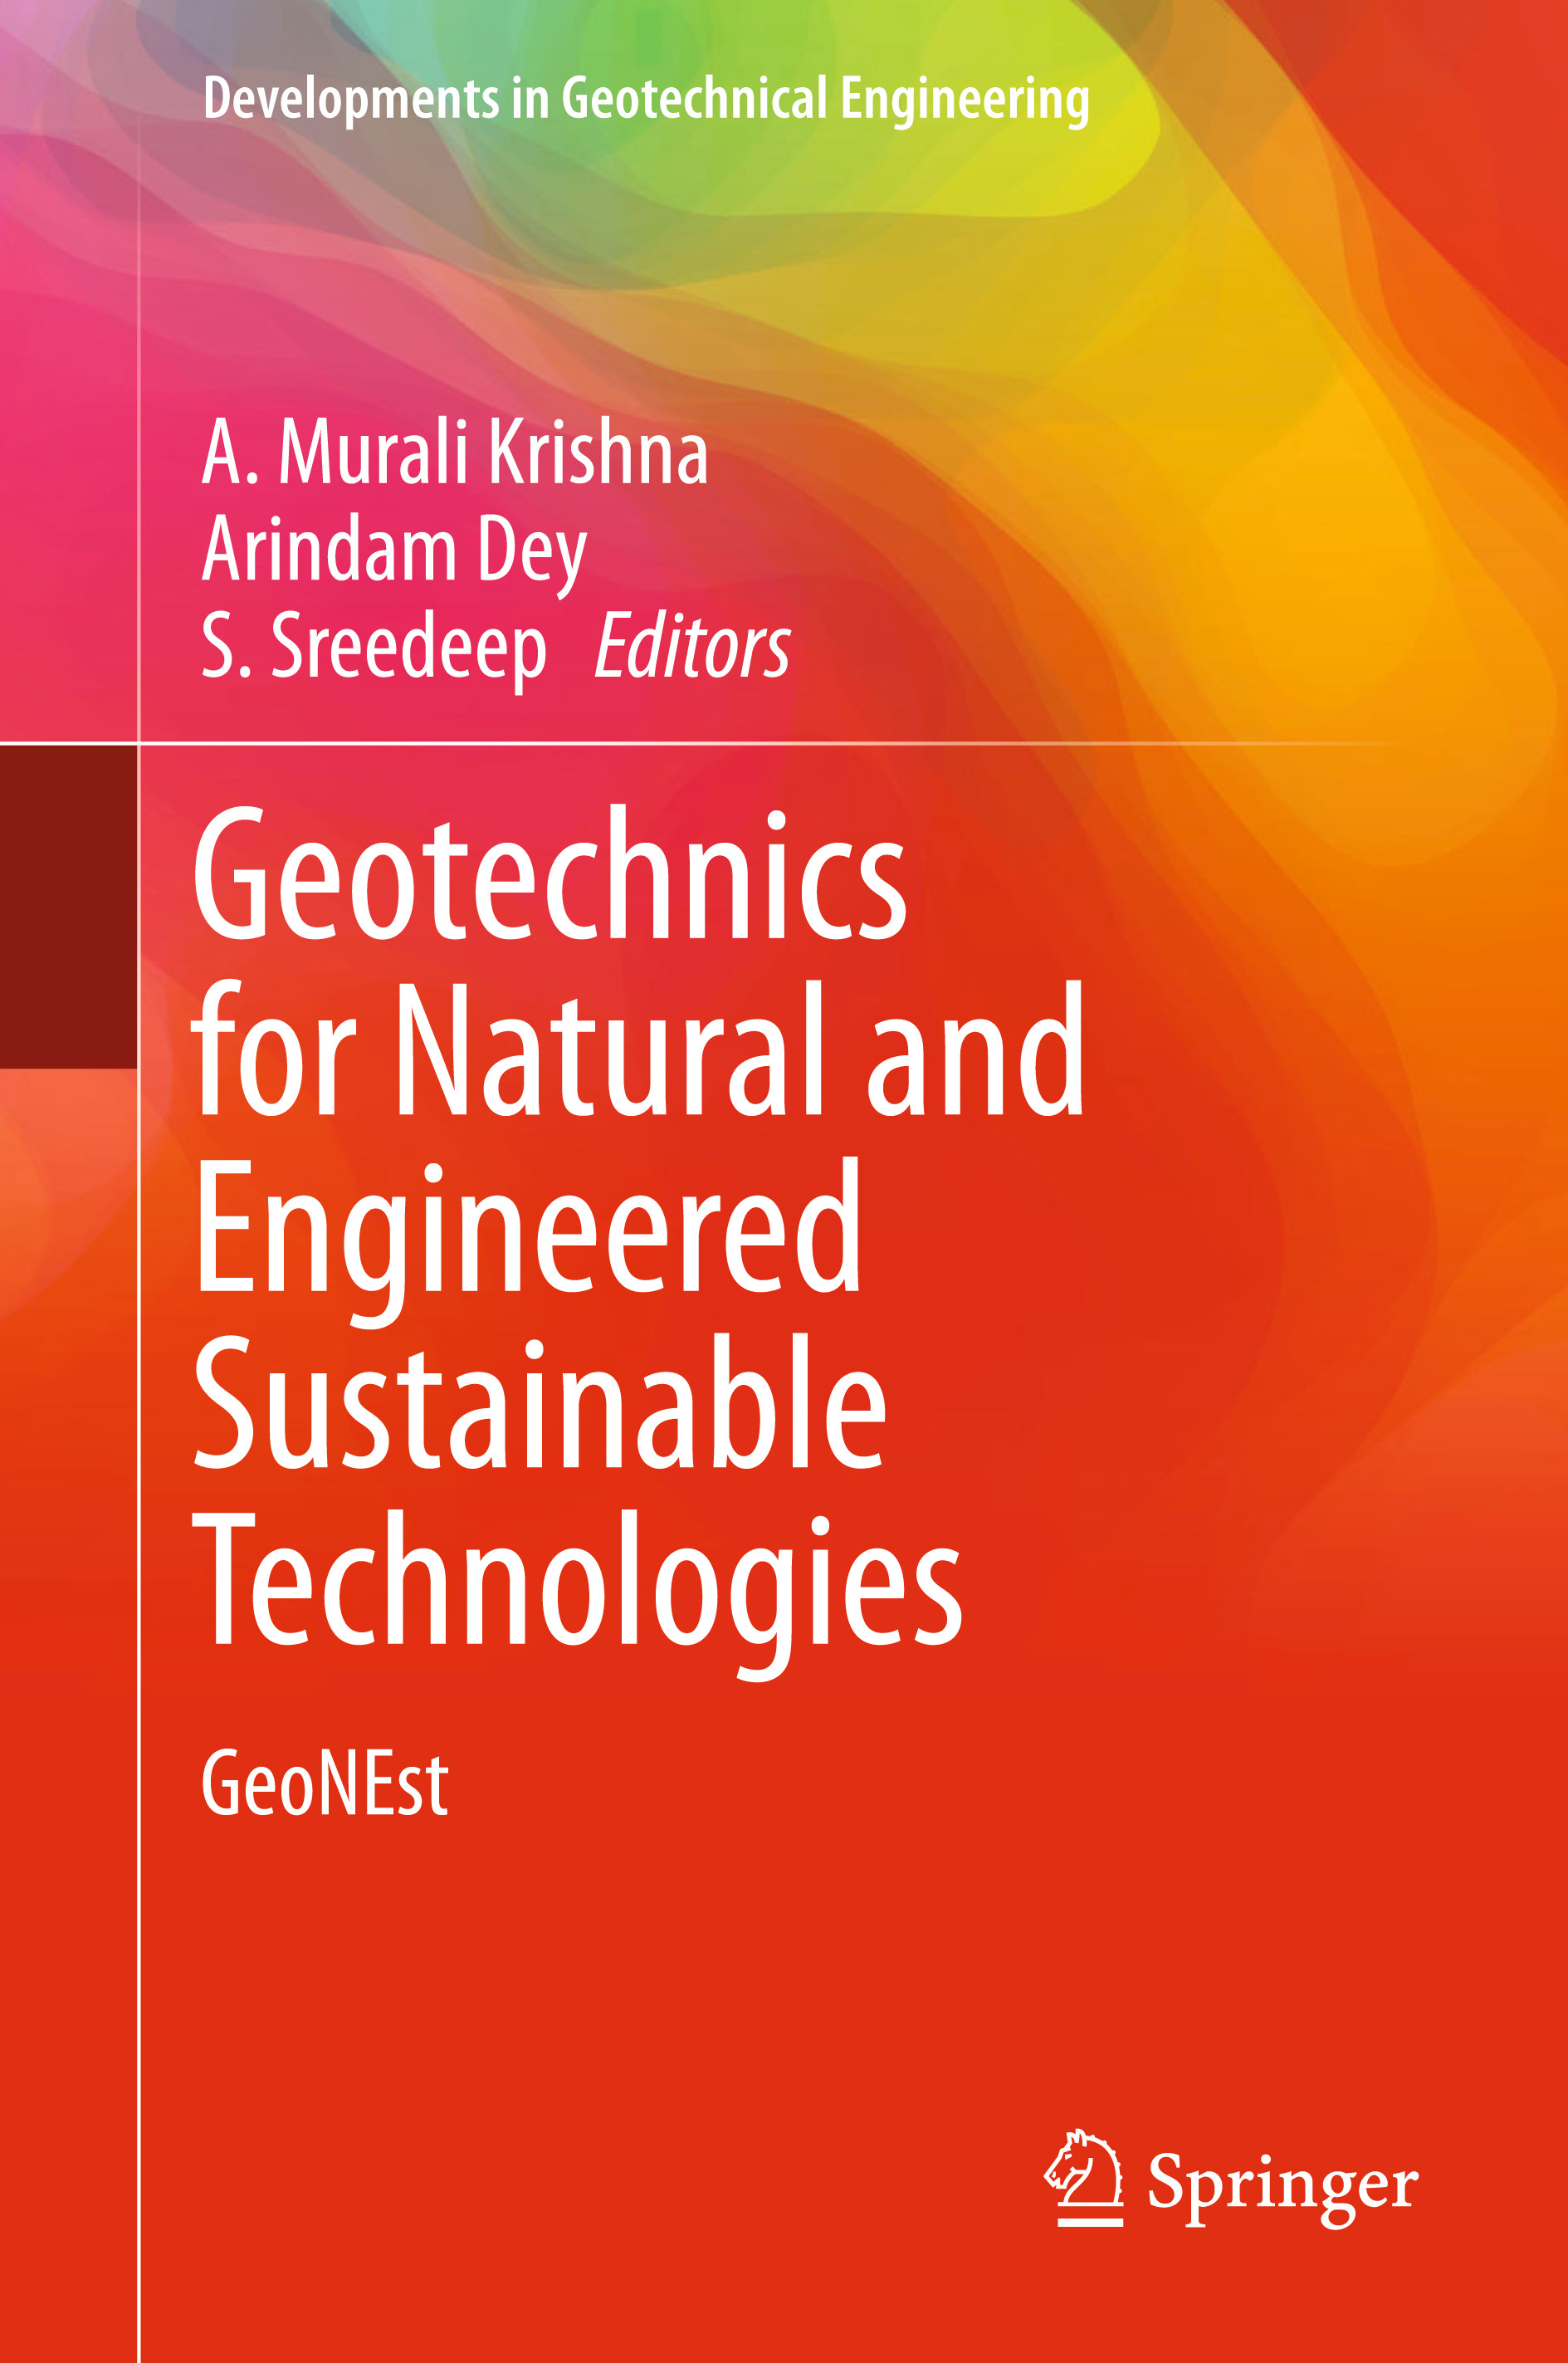 Dey, Arindam - Geotechnics for Natural and Engineered Sustainable Technologies, ebook